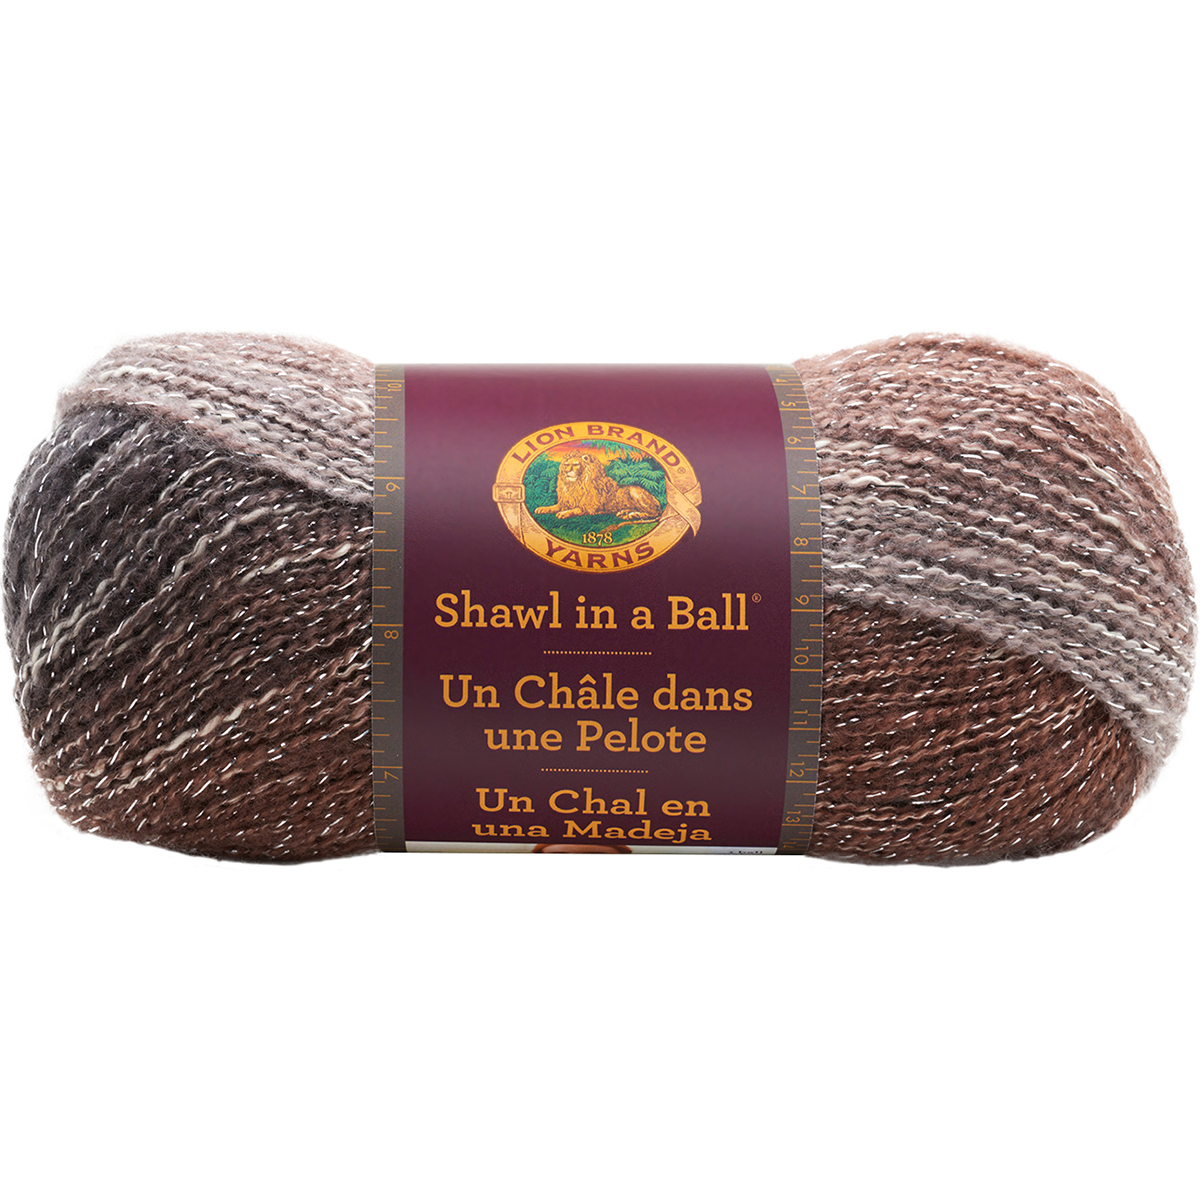 Lion Brand Shawl in a Ball Cotton & Acrylic Peaceful Earth Yarn, 518 Yd.